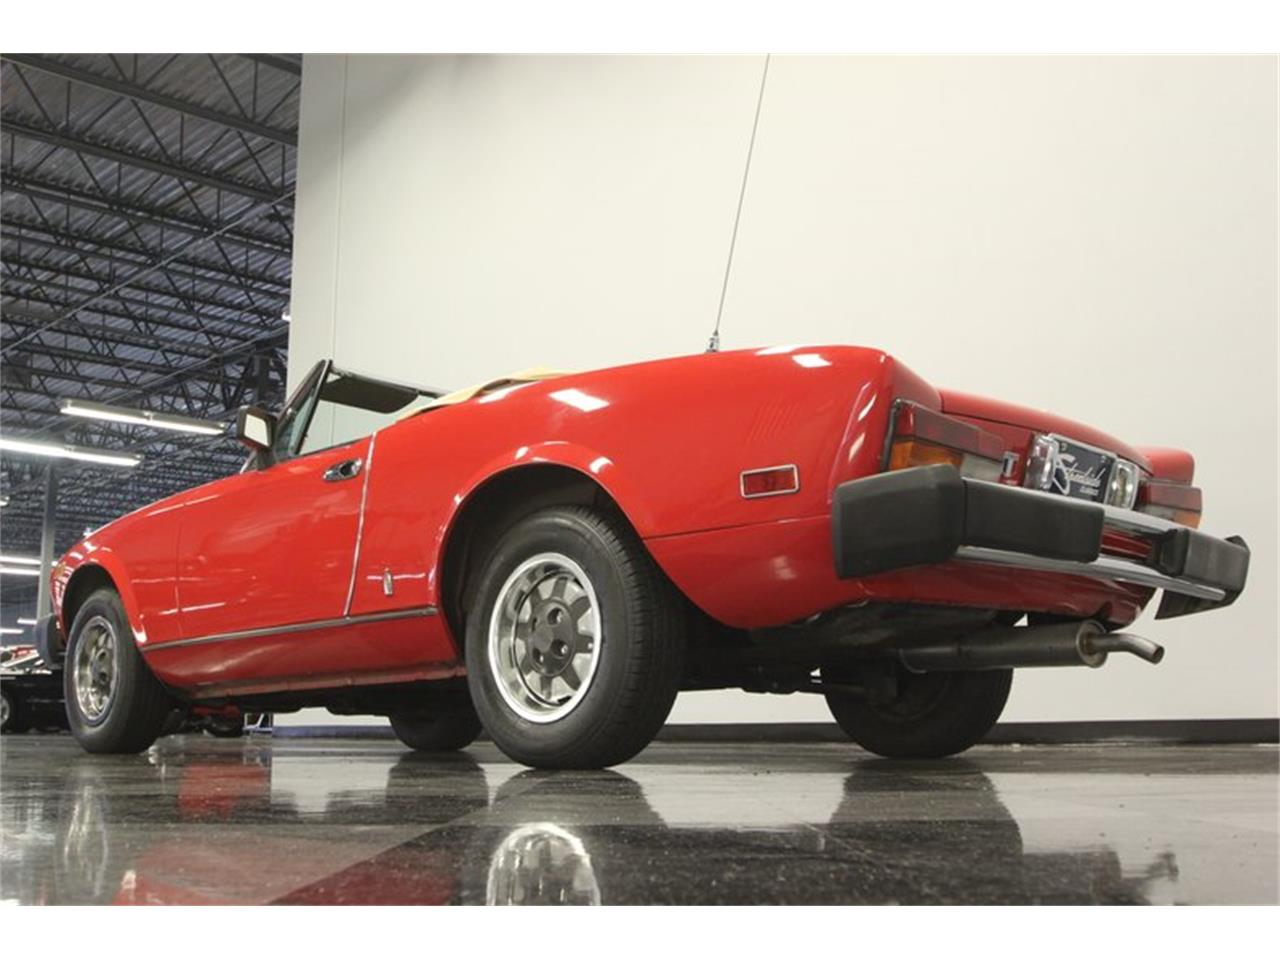 Large Picture of 1980 Fiat Spider located in Lutz Florida - $21,995.00 - Q5HU